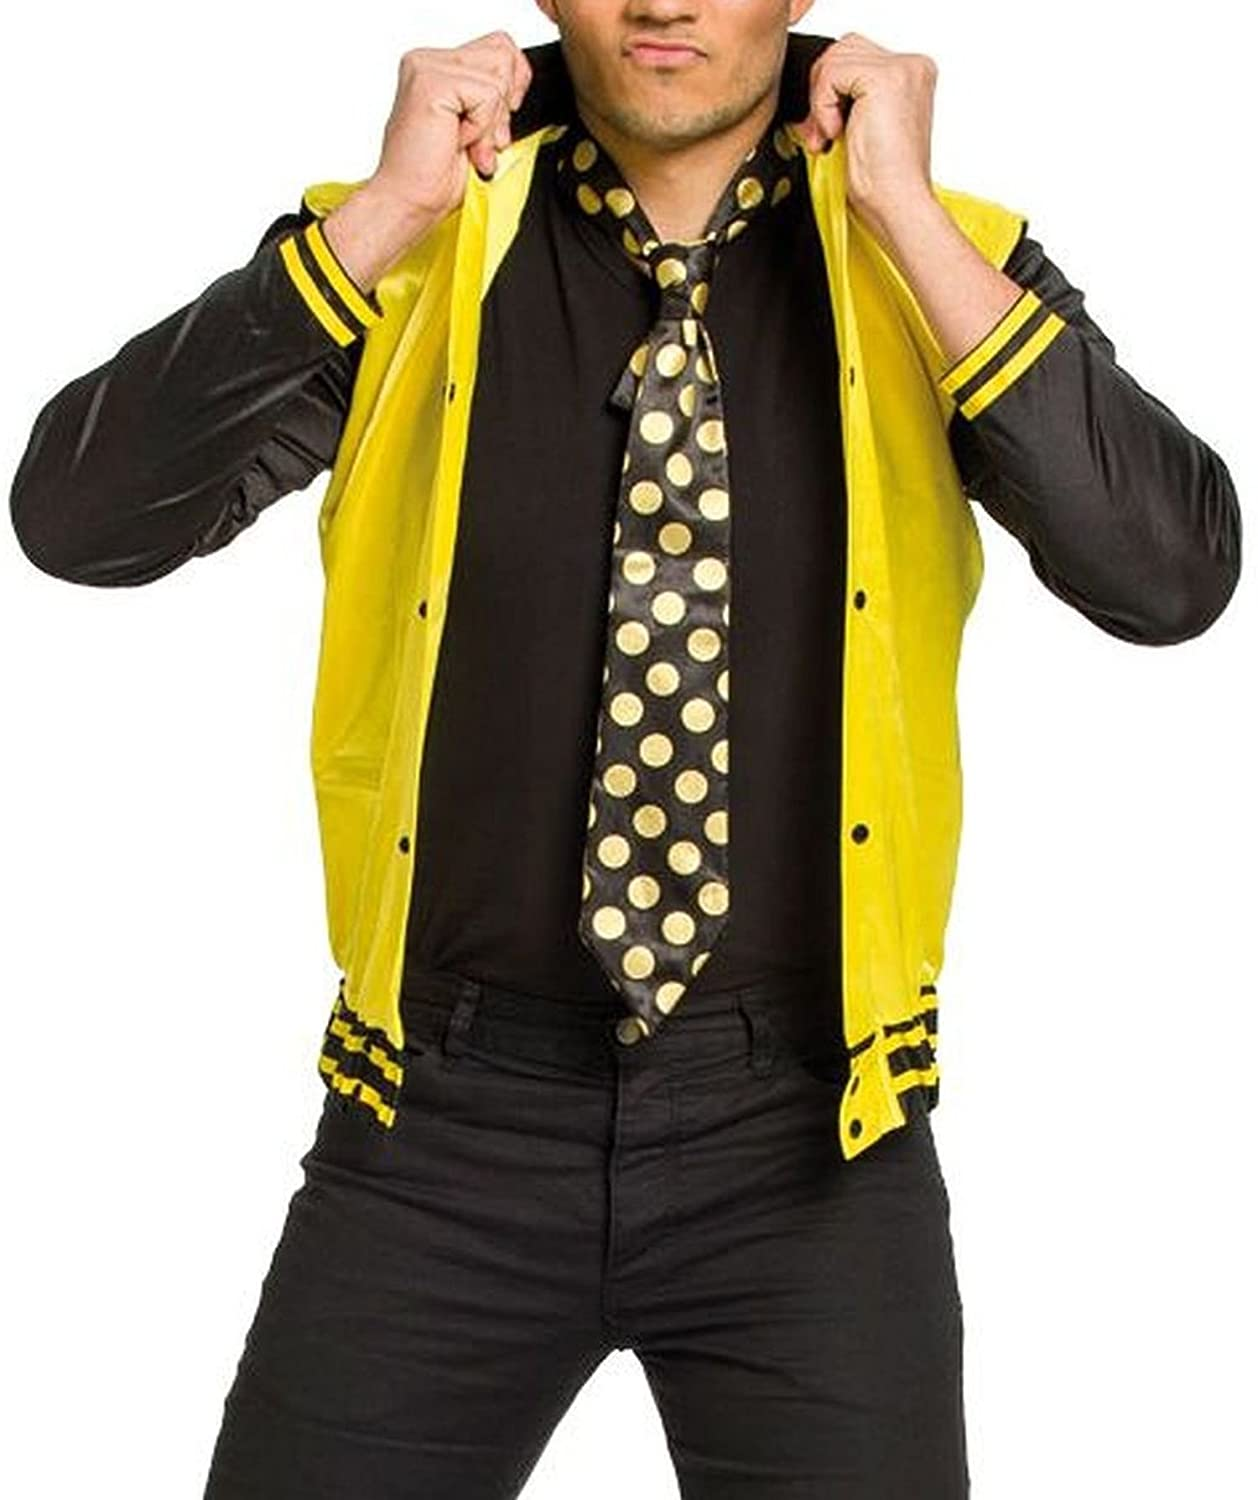 Folat – Adultos Disfraz Rock y Roll, chaqueta y corbata: Amazon.es ...